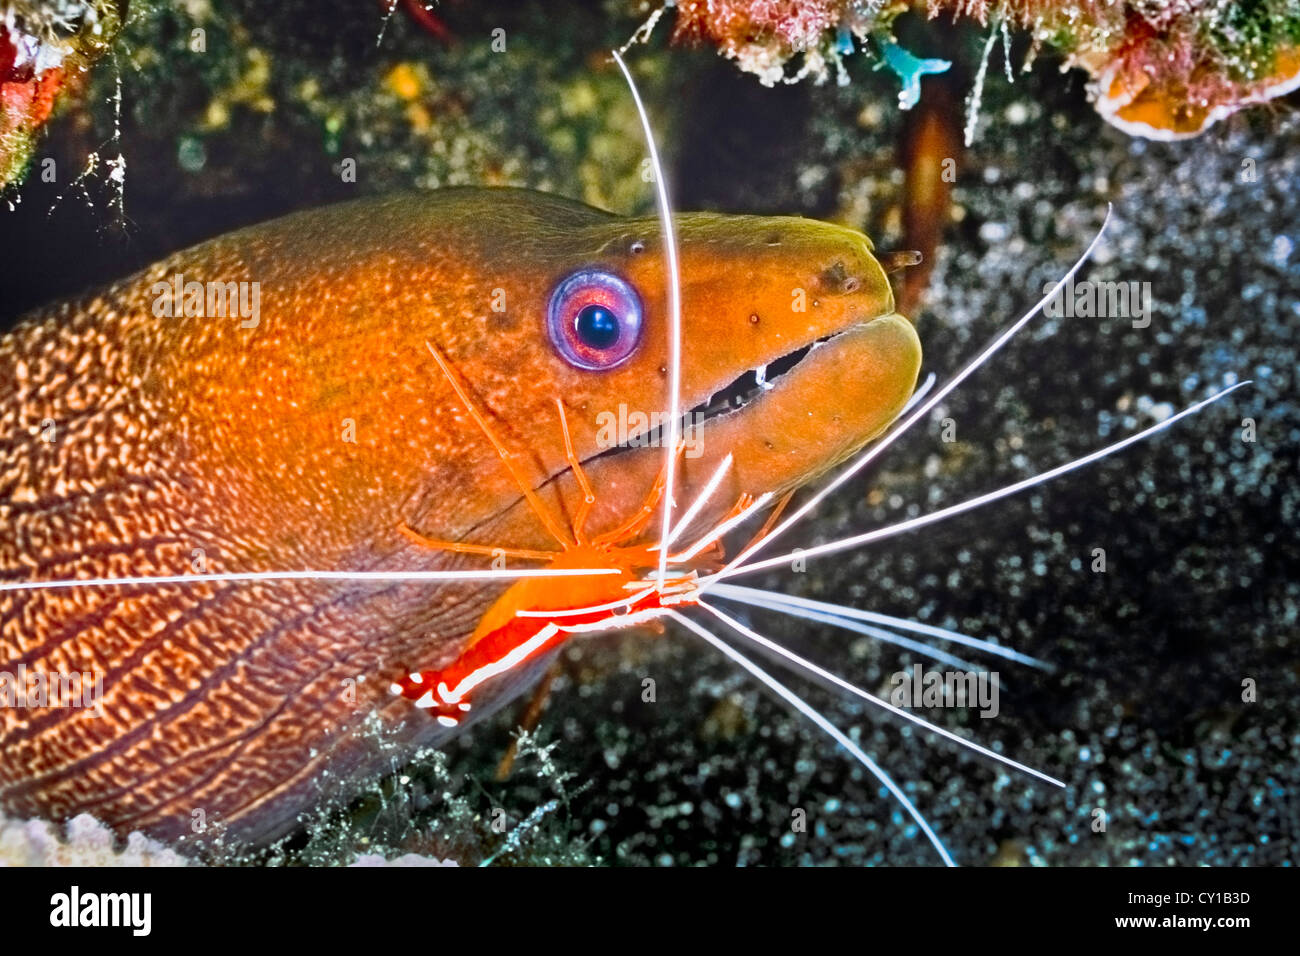 Undulated Moray Eel cleaned by Scarlet Cleaner Shrimp, Gymnothorax undulatus, Lysmata amboinensis, Big Island, Hawaii, - Stock Image